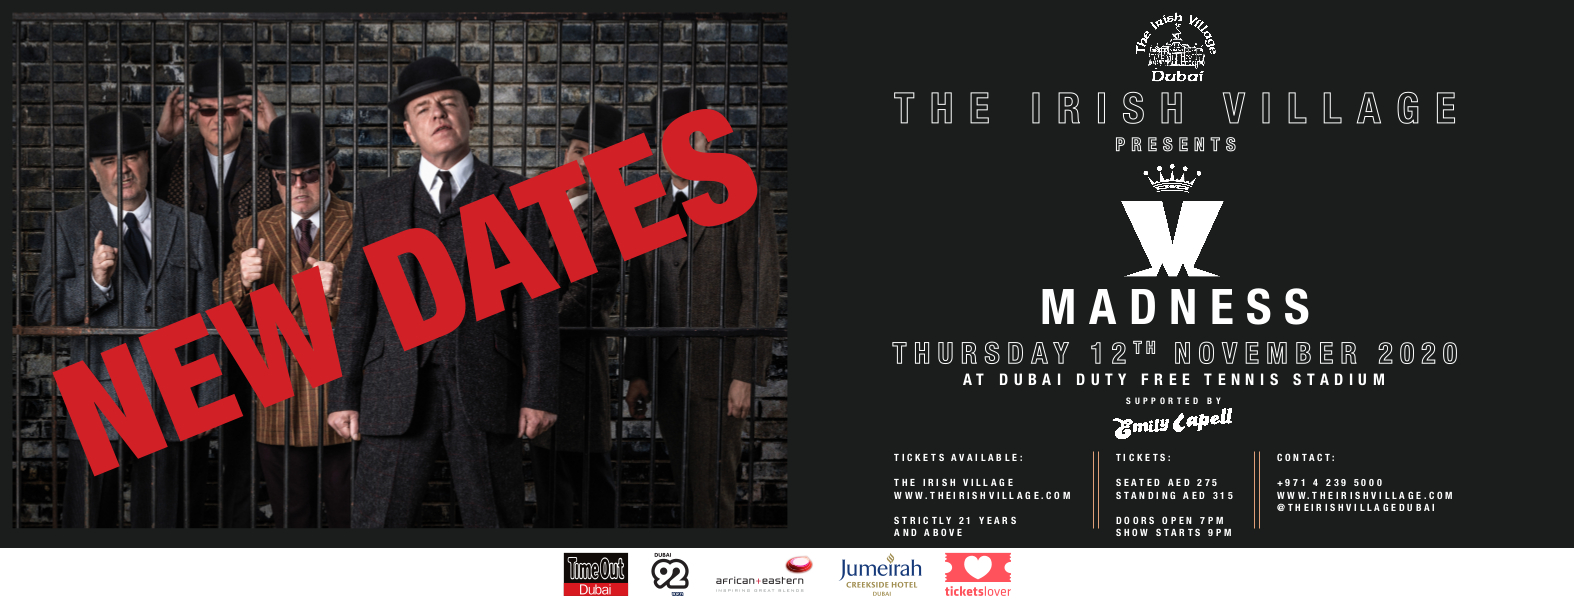 The Irish Village presents Madness Live in Dubai 2020 - NEW DATE